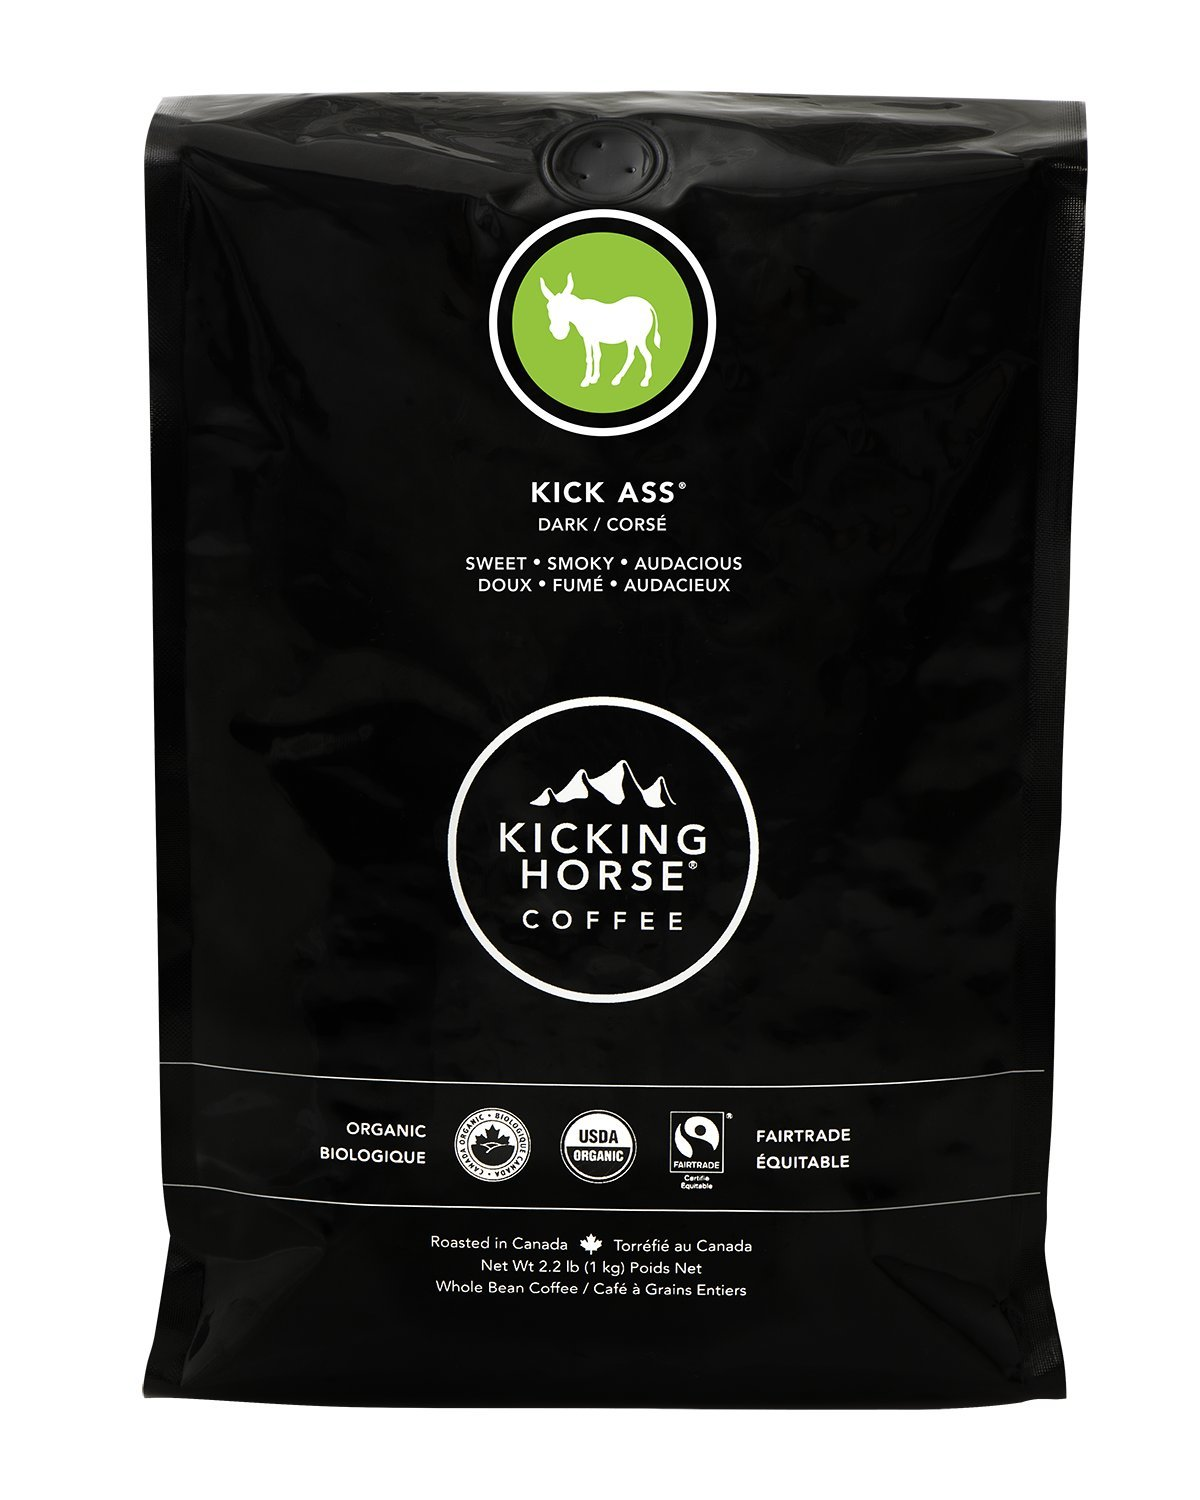 Kicking Horse Coffee, Kick Ass, Dark Roast, Whole Bean, 2.2 Pound - Certified Organic, Fairtrade, Kosher Coffee by Kicking Horse Coffee